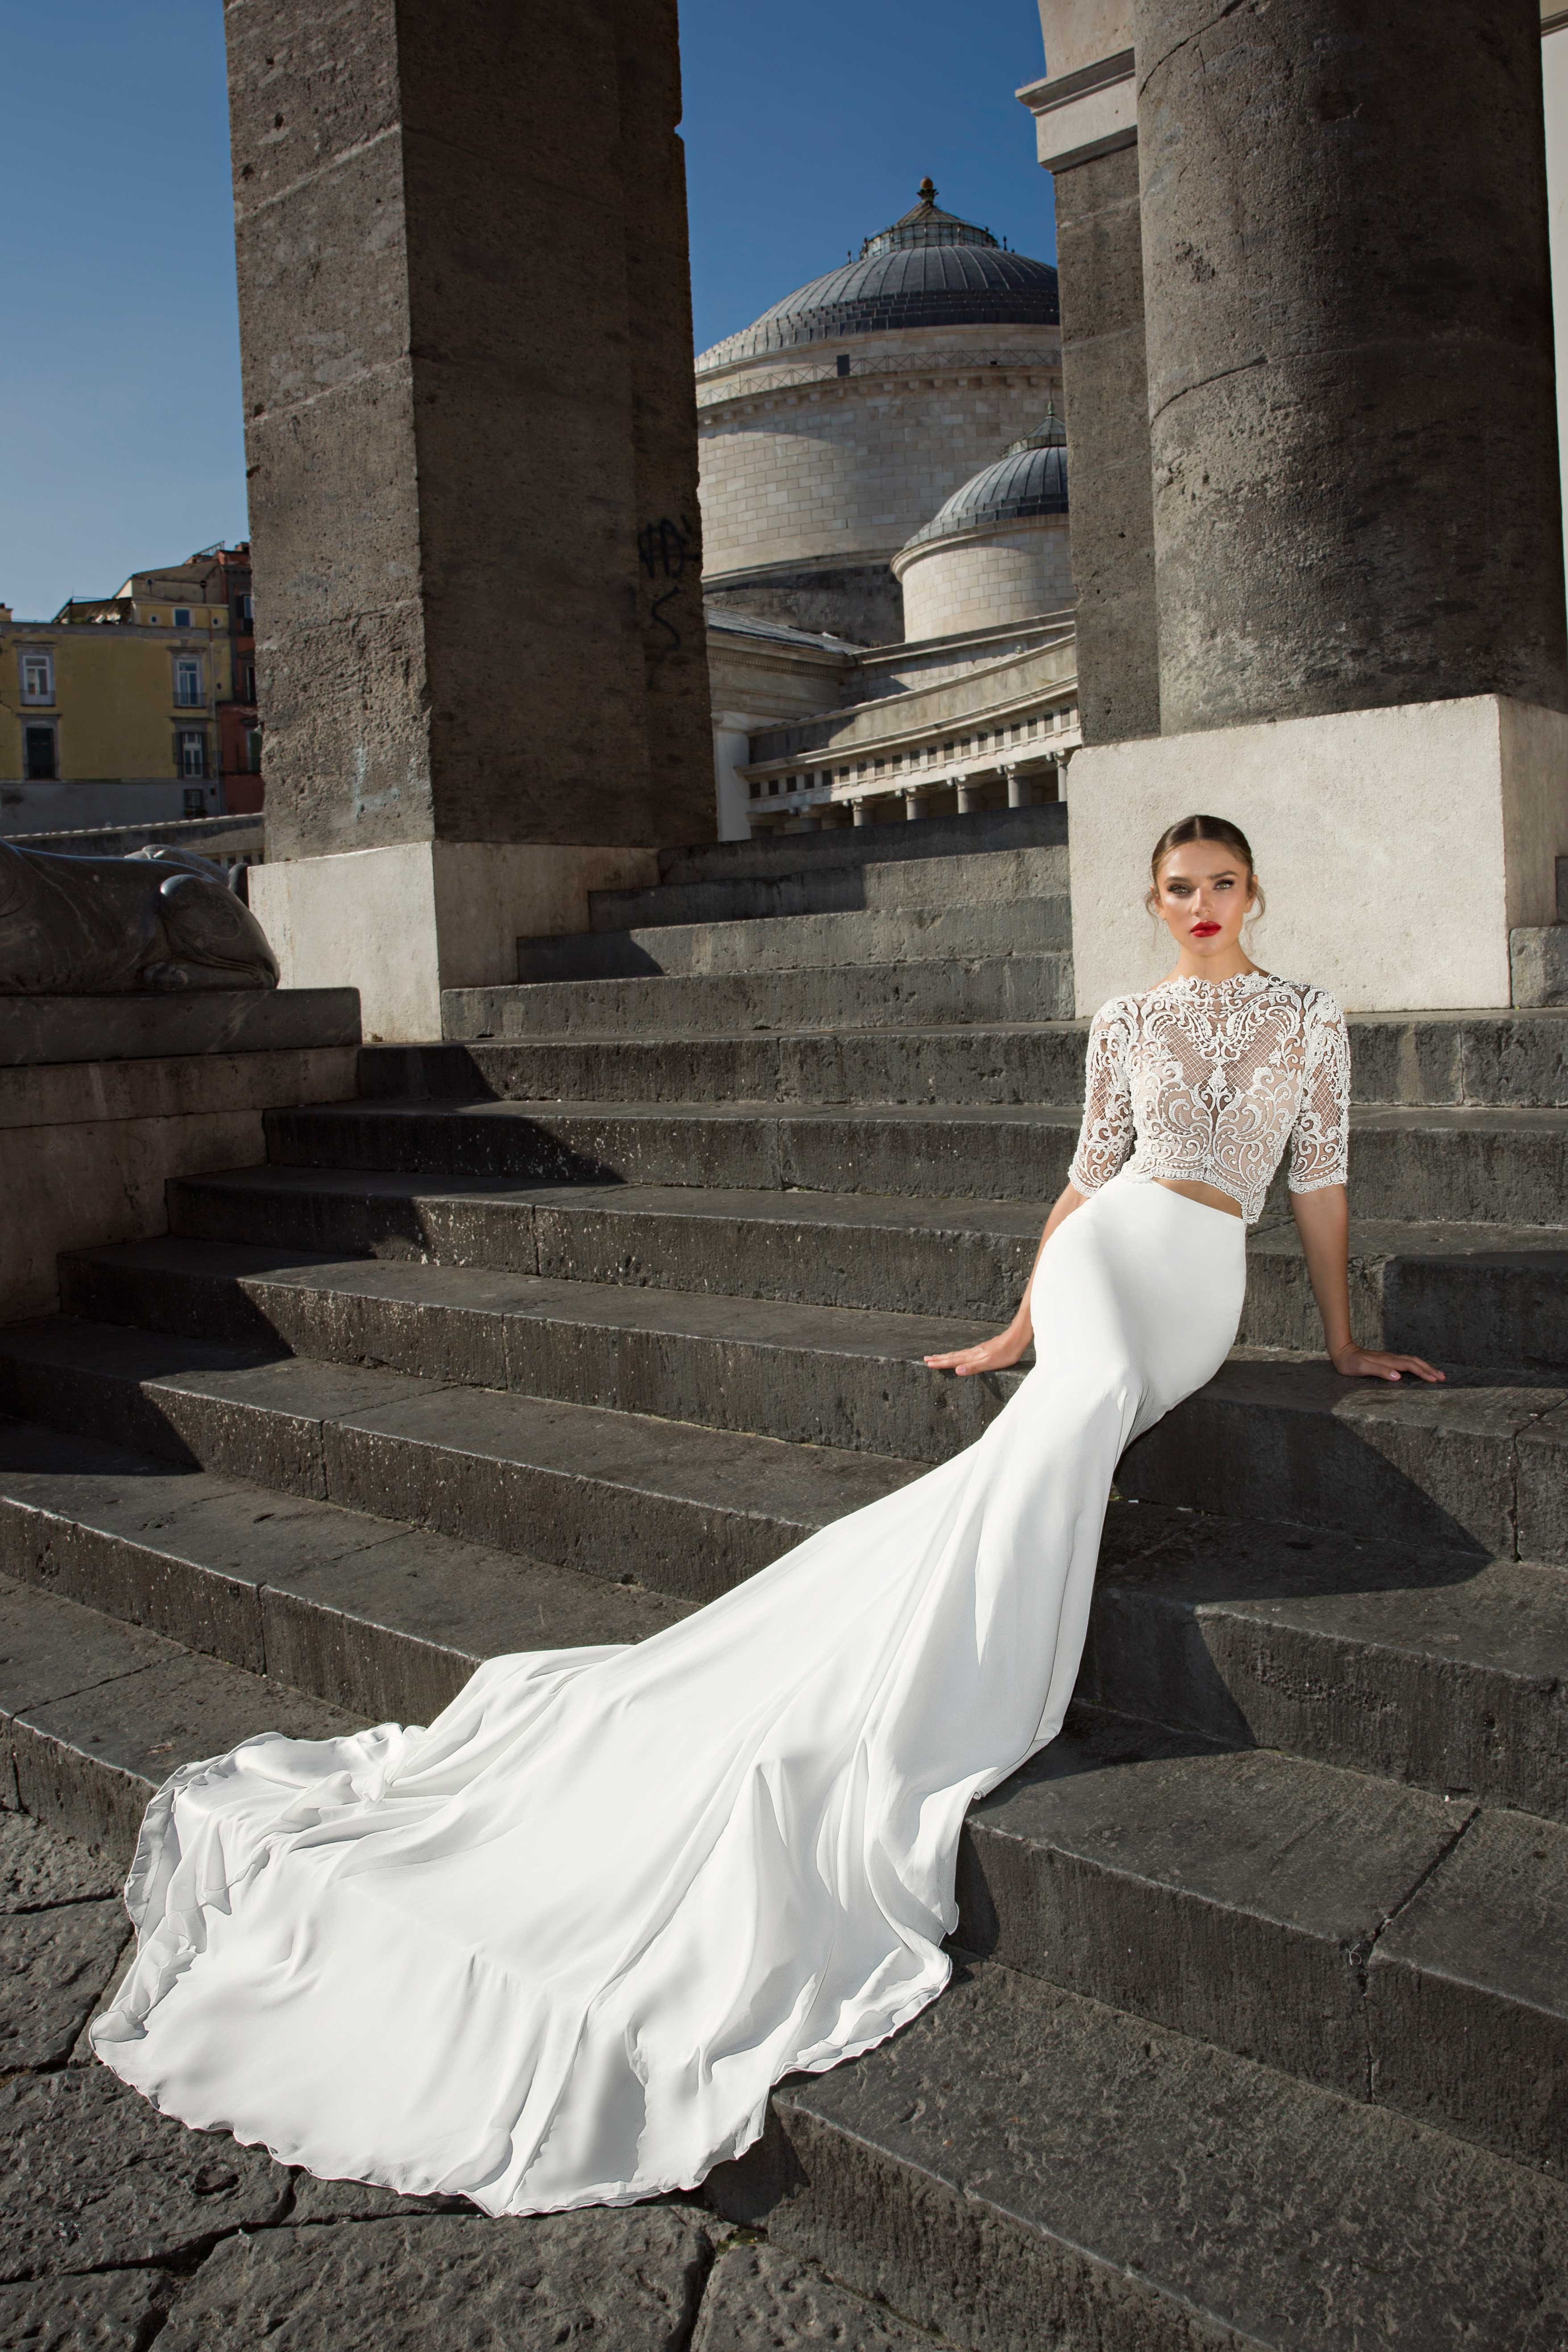 bb863750204 Wedding Dresses with Long Trains Inspired by The Cheetah Girls Star ...